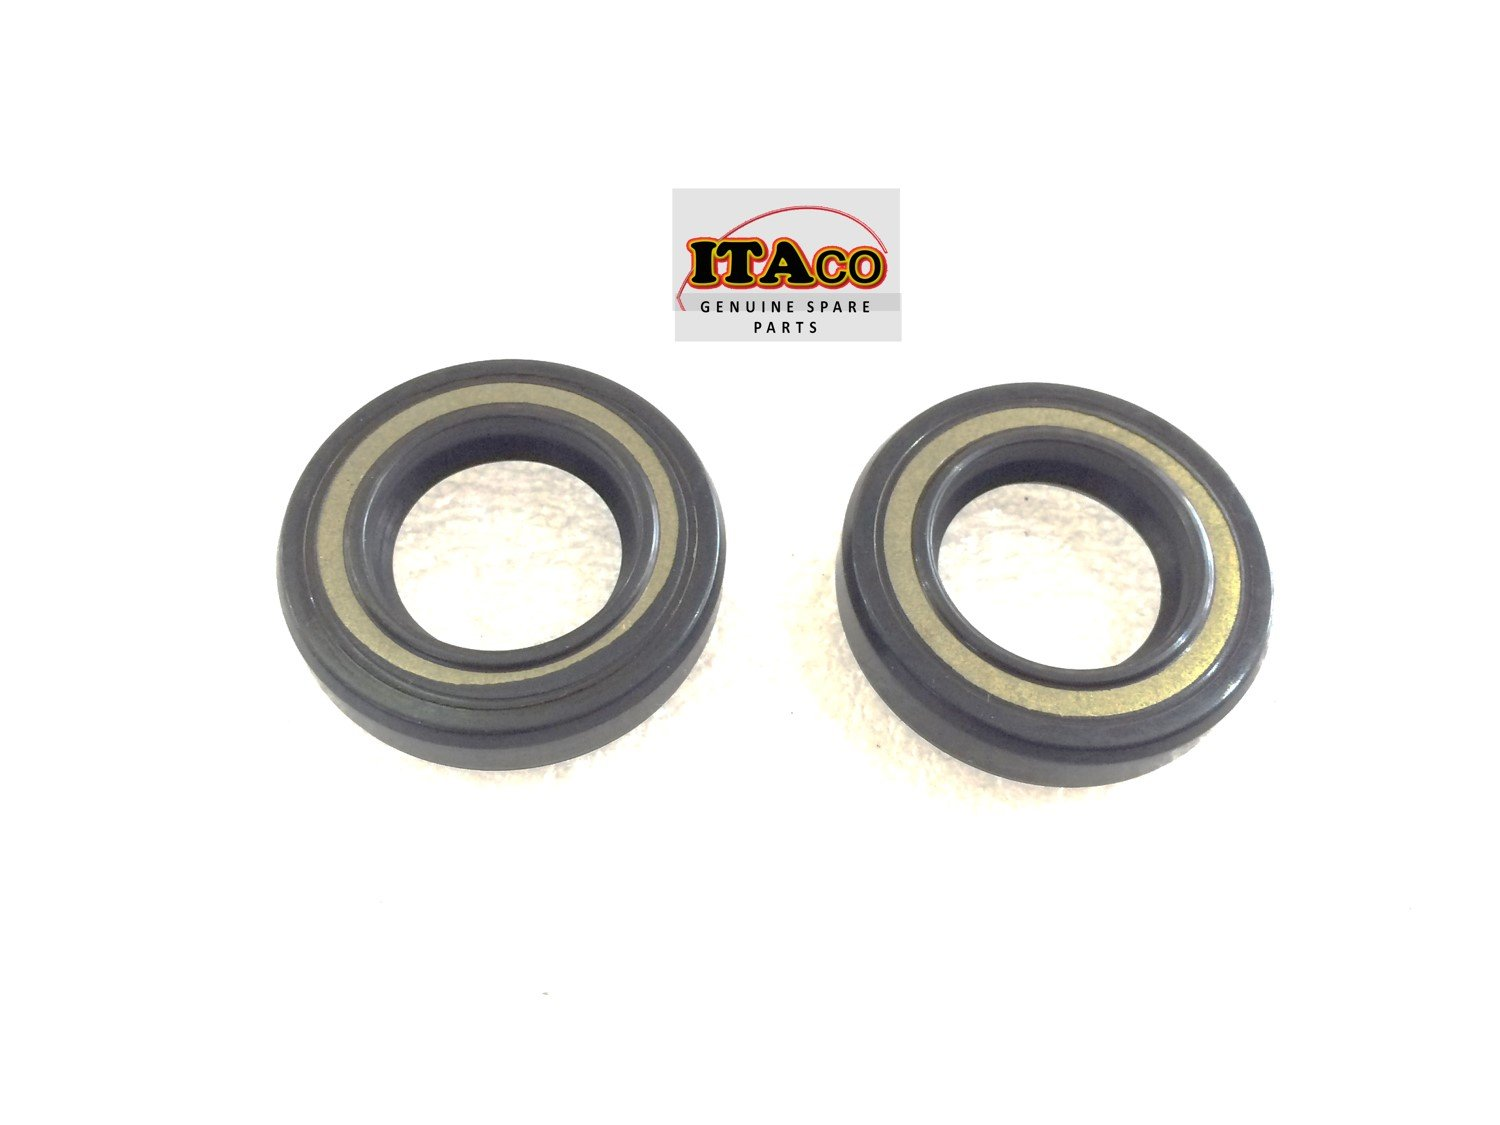 2X OIL SEAL SEALS S-TYPE 93101-17054 -00 fit Yamaha Outboard Lower Casing 8HP 9.9HP 15HP 20HP